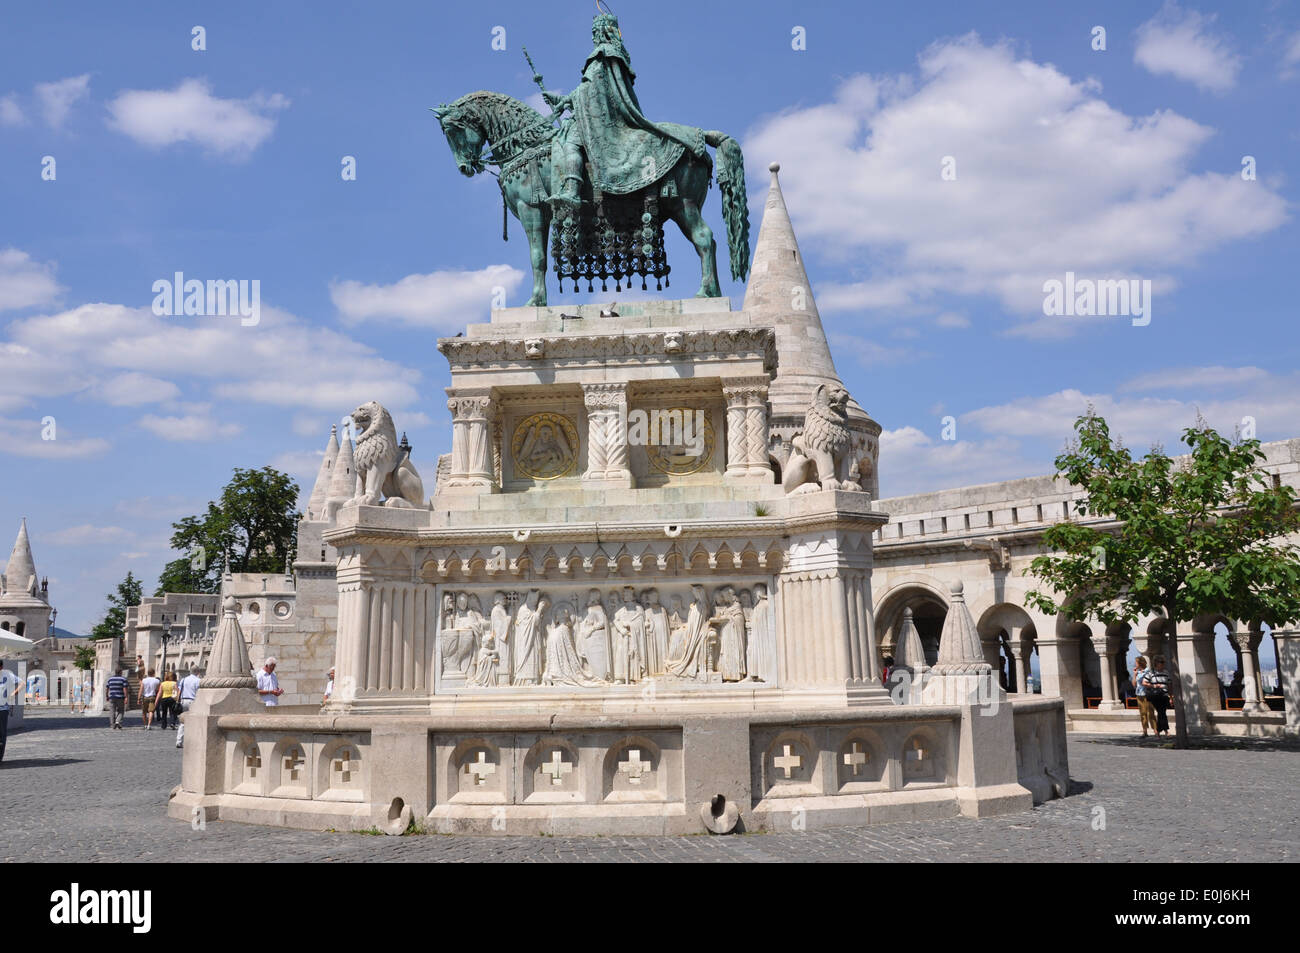 A  statue of Stephen I of Hungary mounted on a horse, located at Fisherman's Bastion, Castle Hill, Budapest. Stock Photo